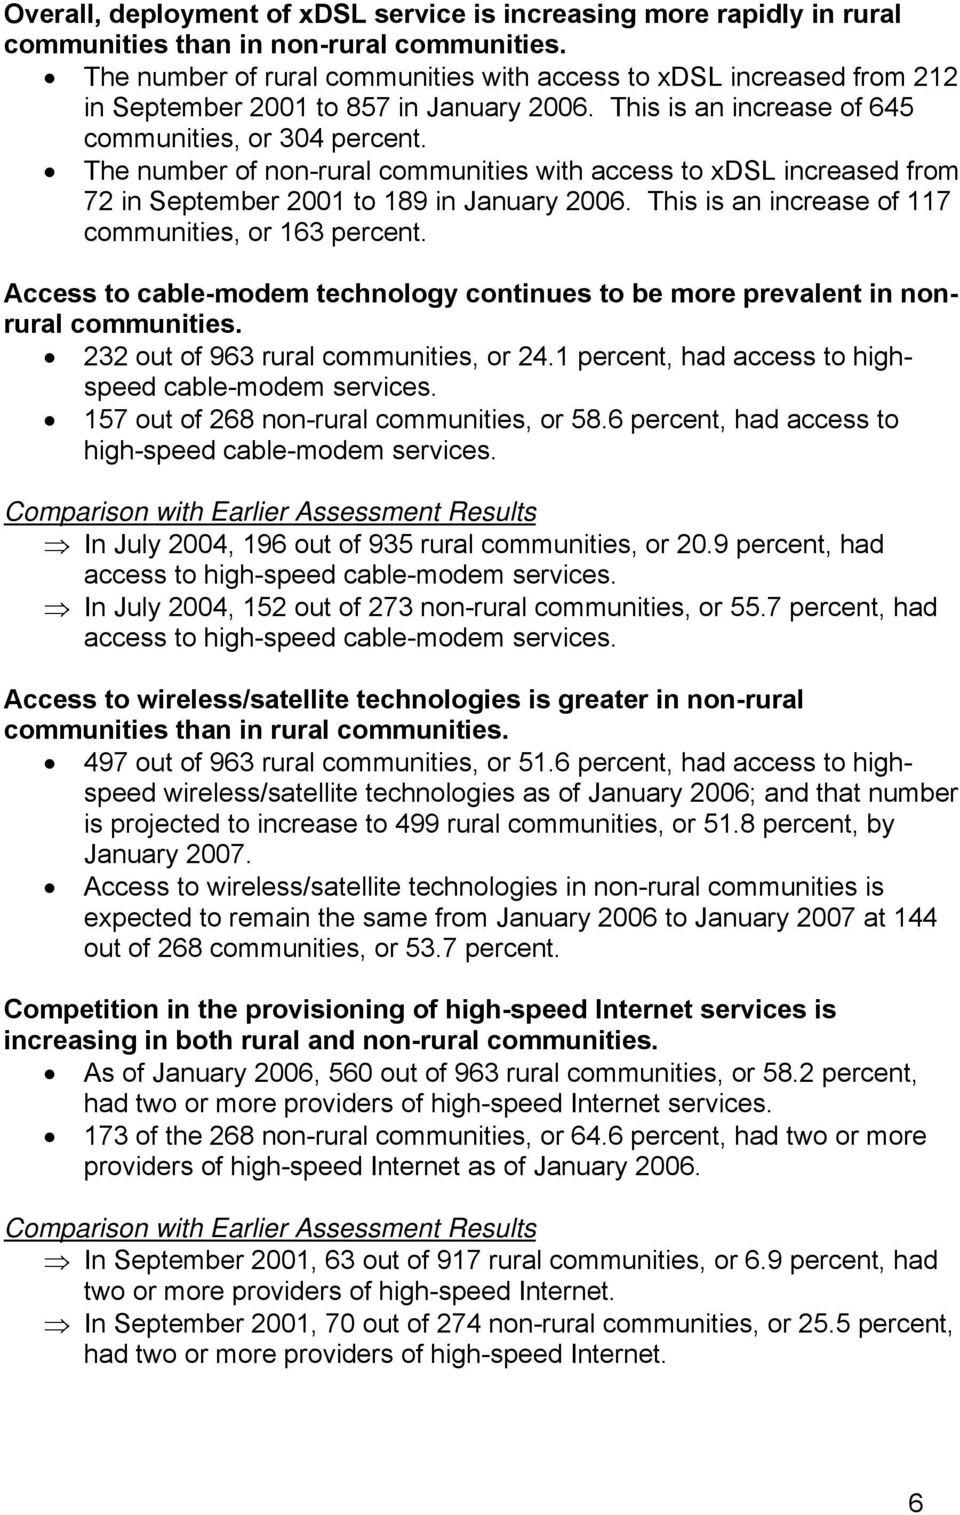 The number of non-rural communities with access to xdsl increased from 72 in September 2001 to 189 in January 2006. This is an increase of 117 communities, or 163 percent.